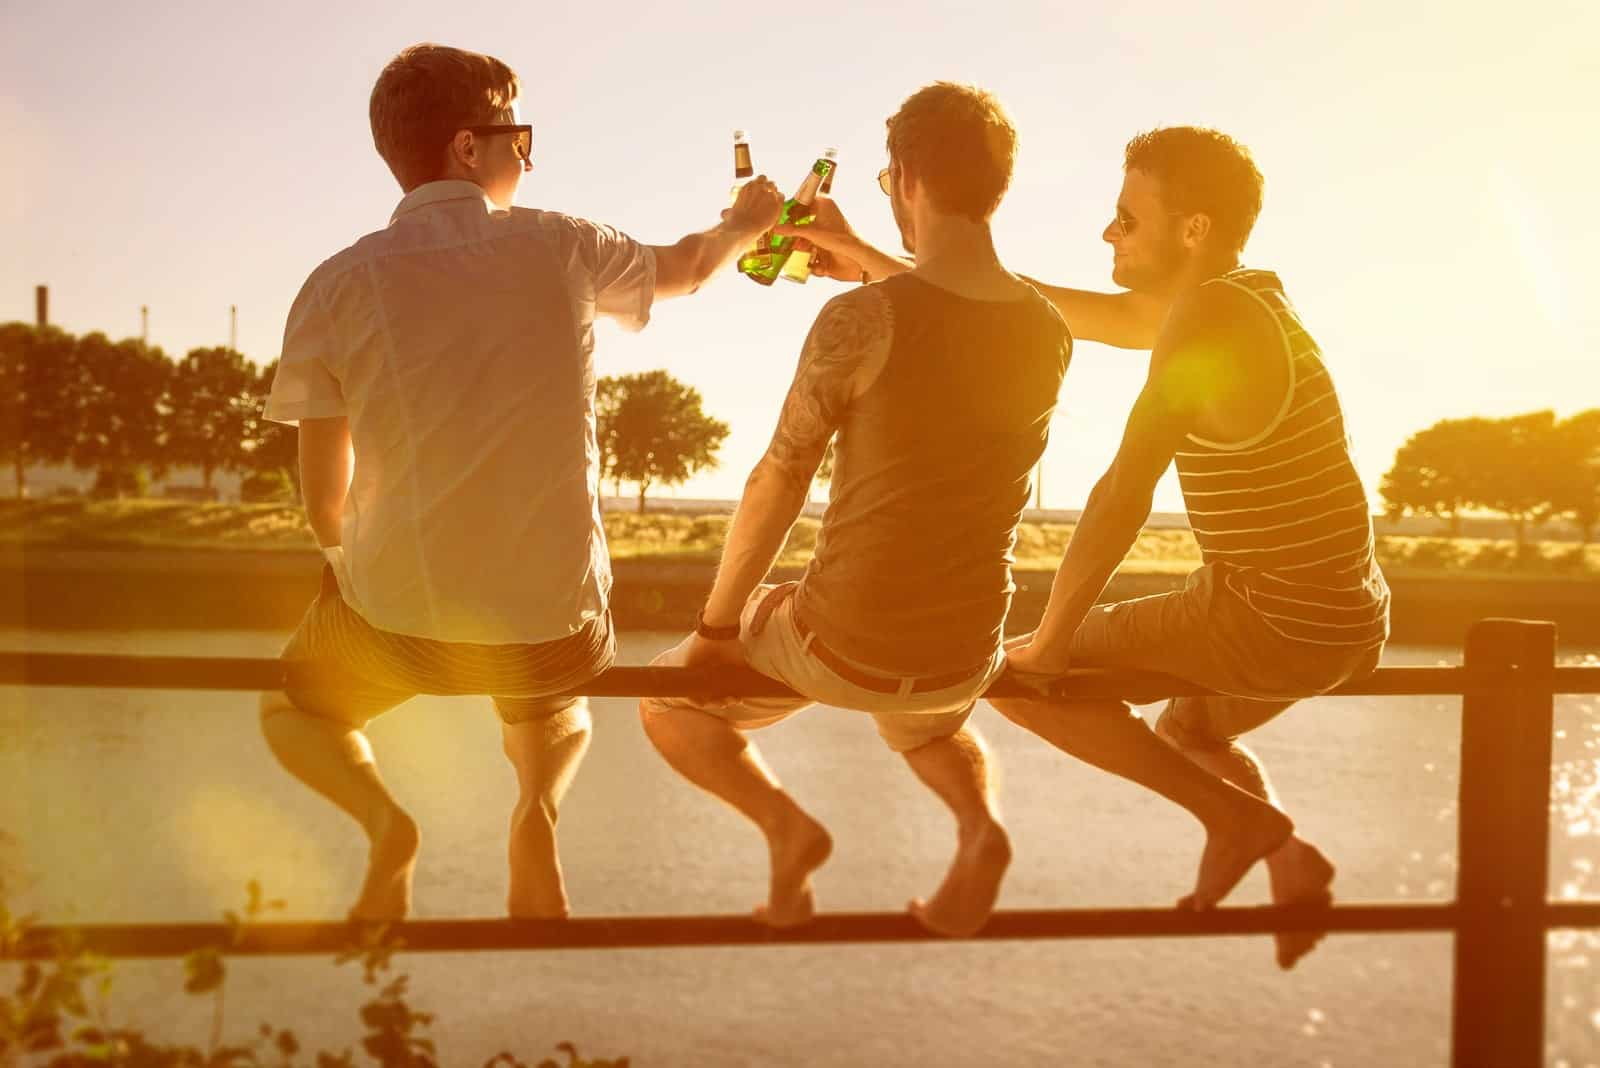 three friends outside at sunset drinking beer